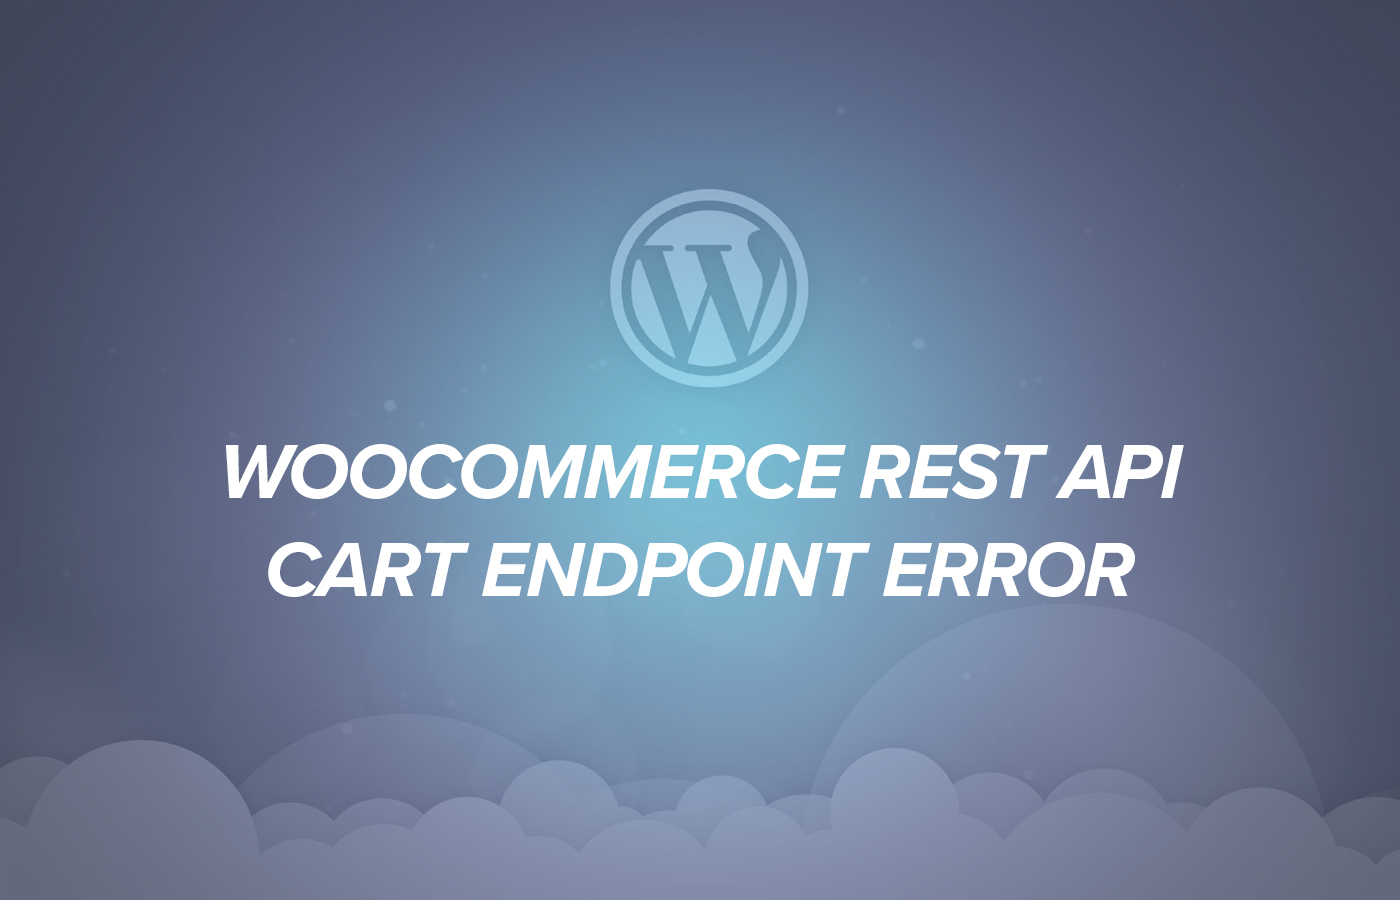 WooCommerce REST API Cart Endpoint Error